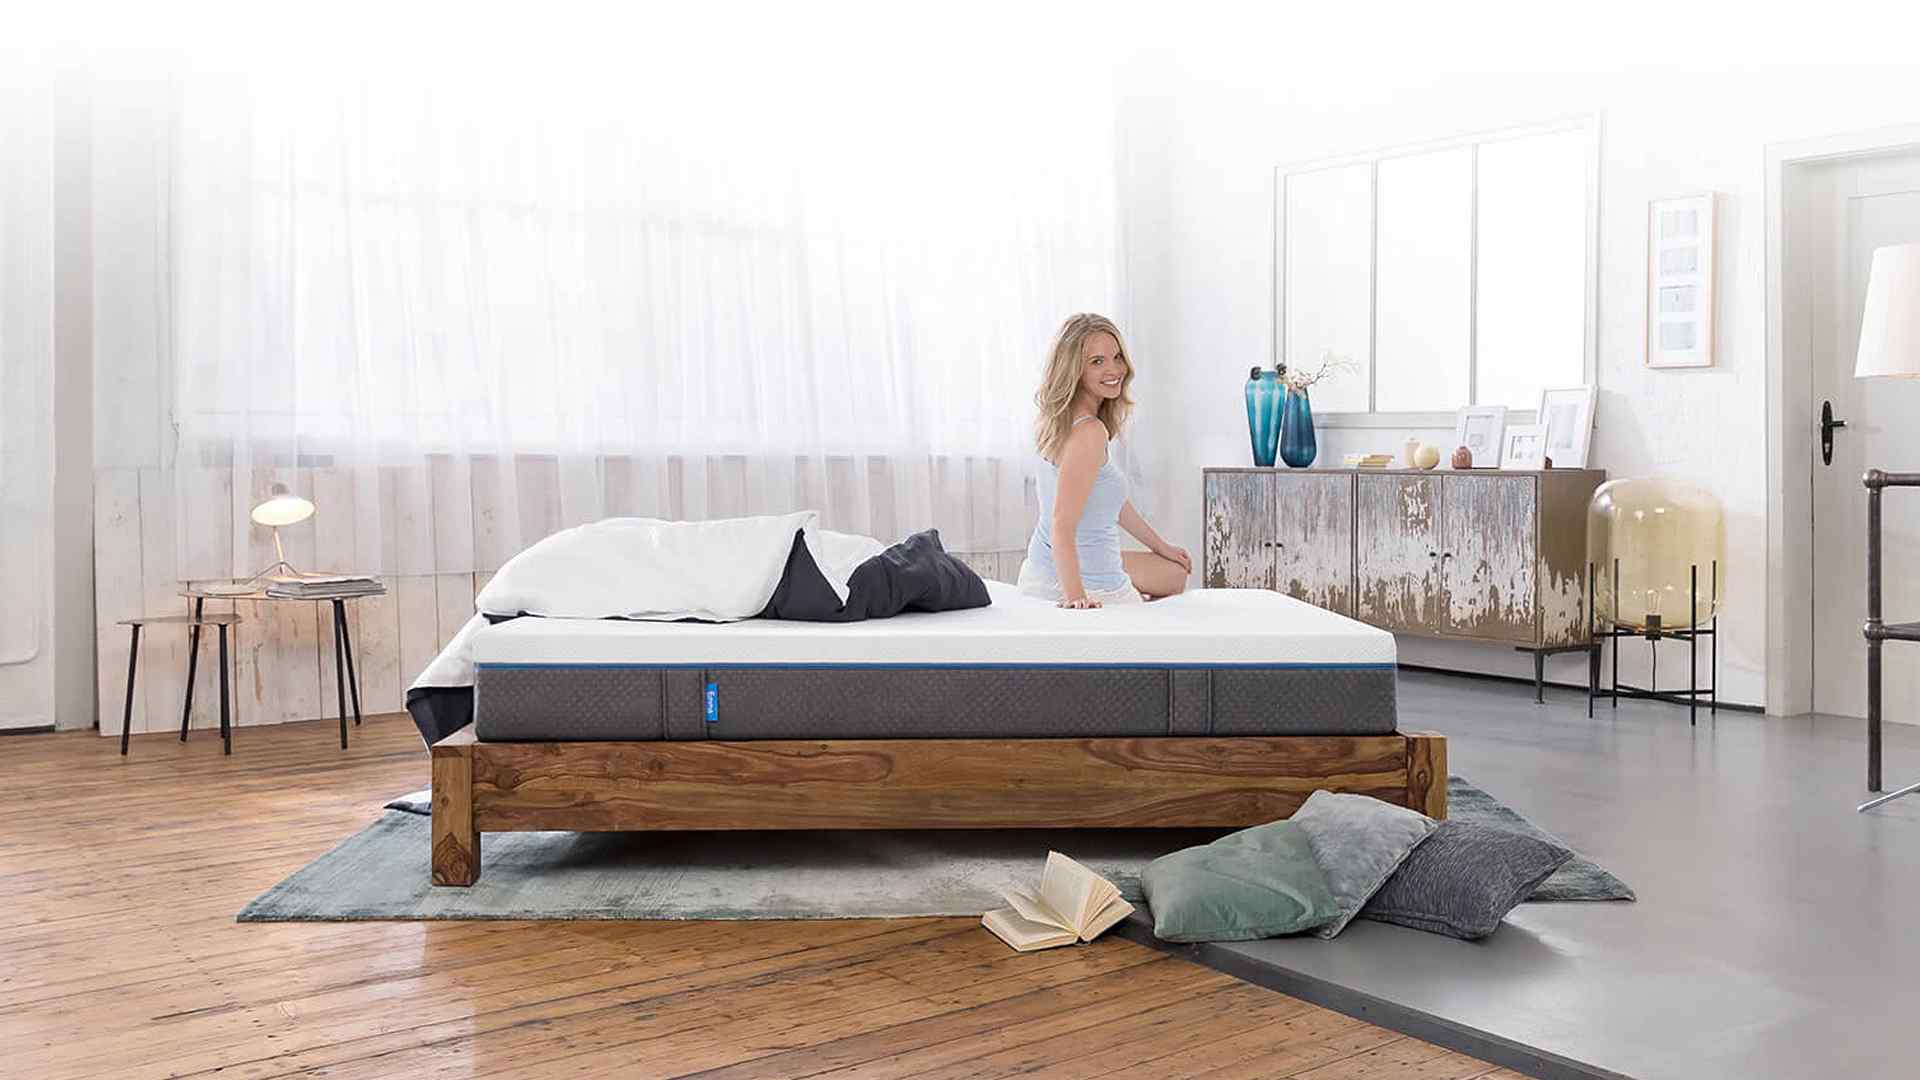 Therapedic Mattress